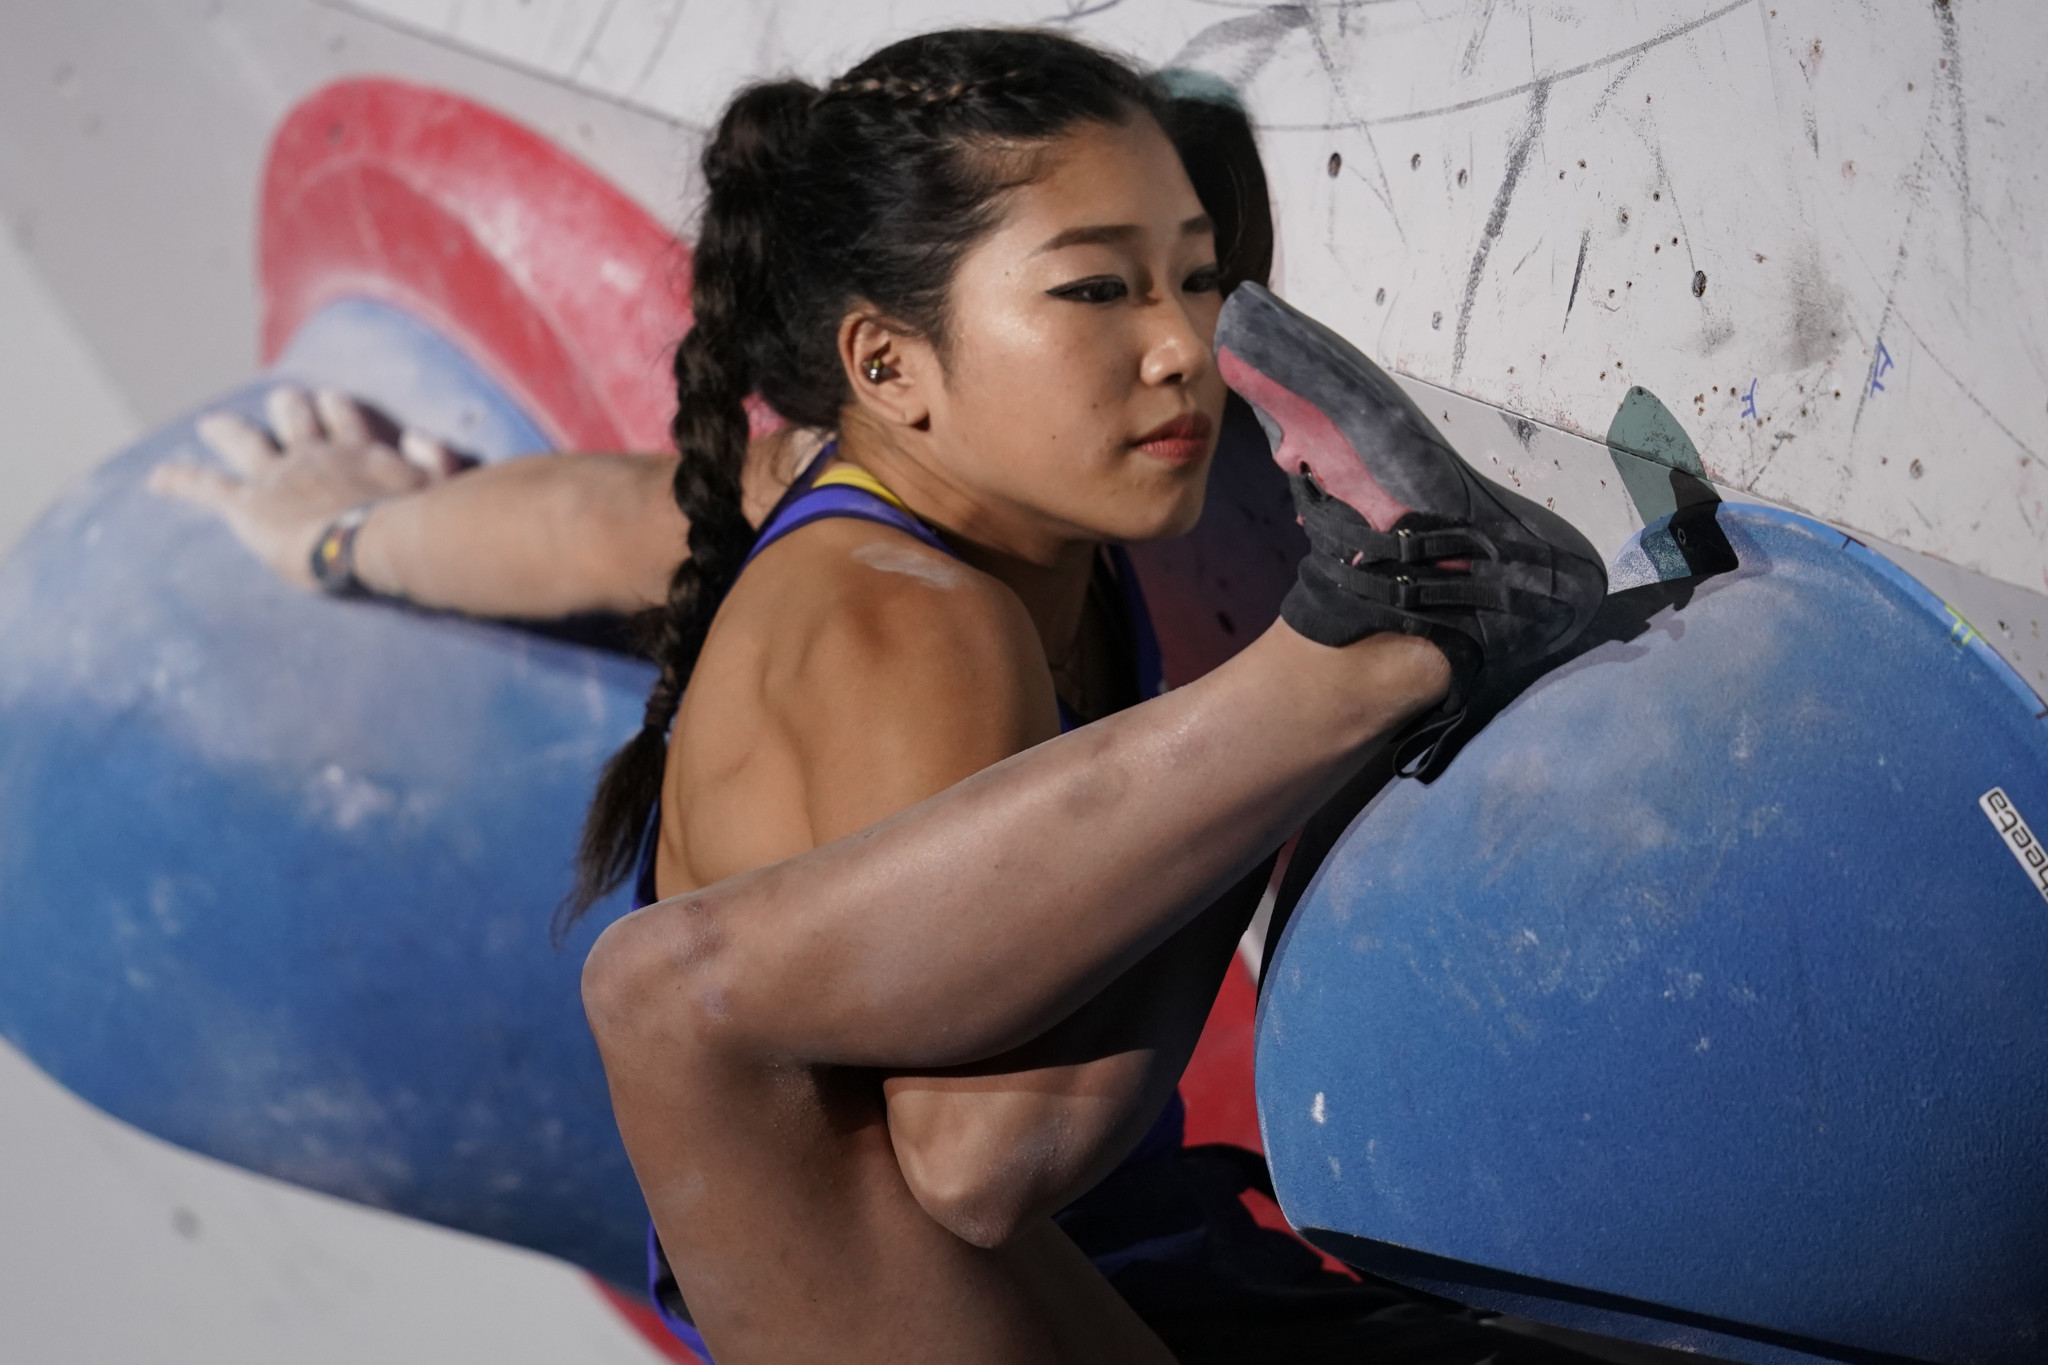 Japan's 2018 World Cup bouldering champion has played down her chances at Tokyo 2020 because of her lack of experience in speed climbing - but we shall see...©Getty Images